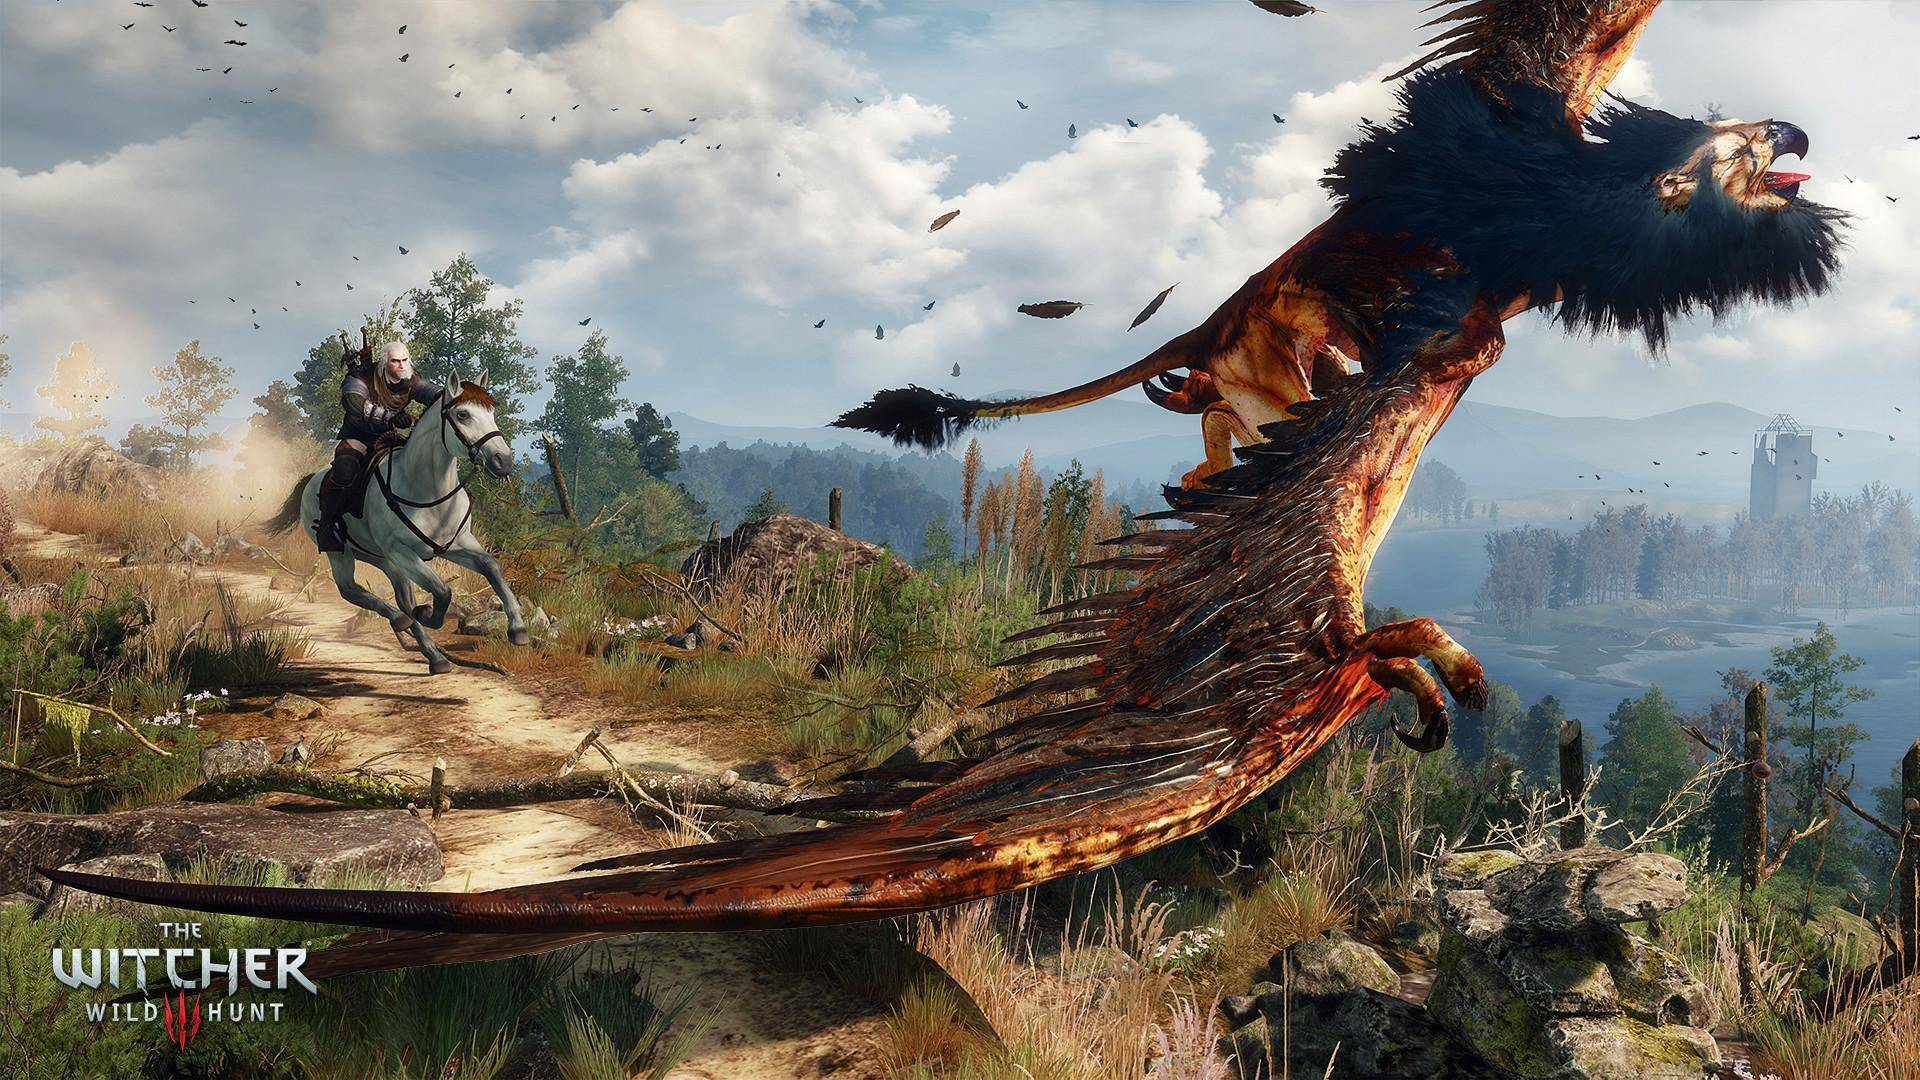 Regarder la bande-annonce de The Witcher 3 Wild Hunt GOTY